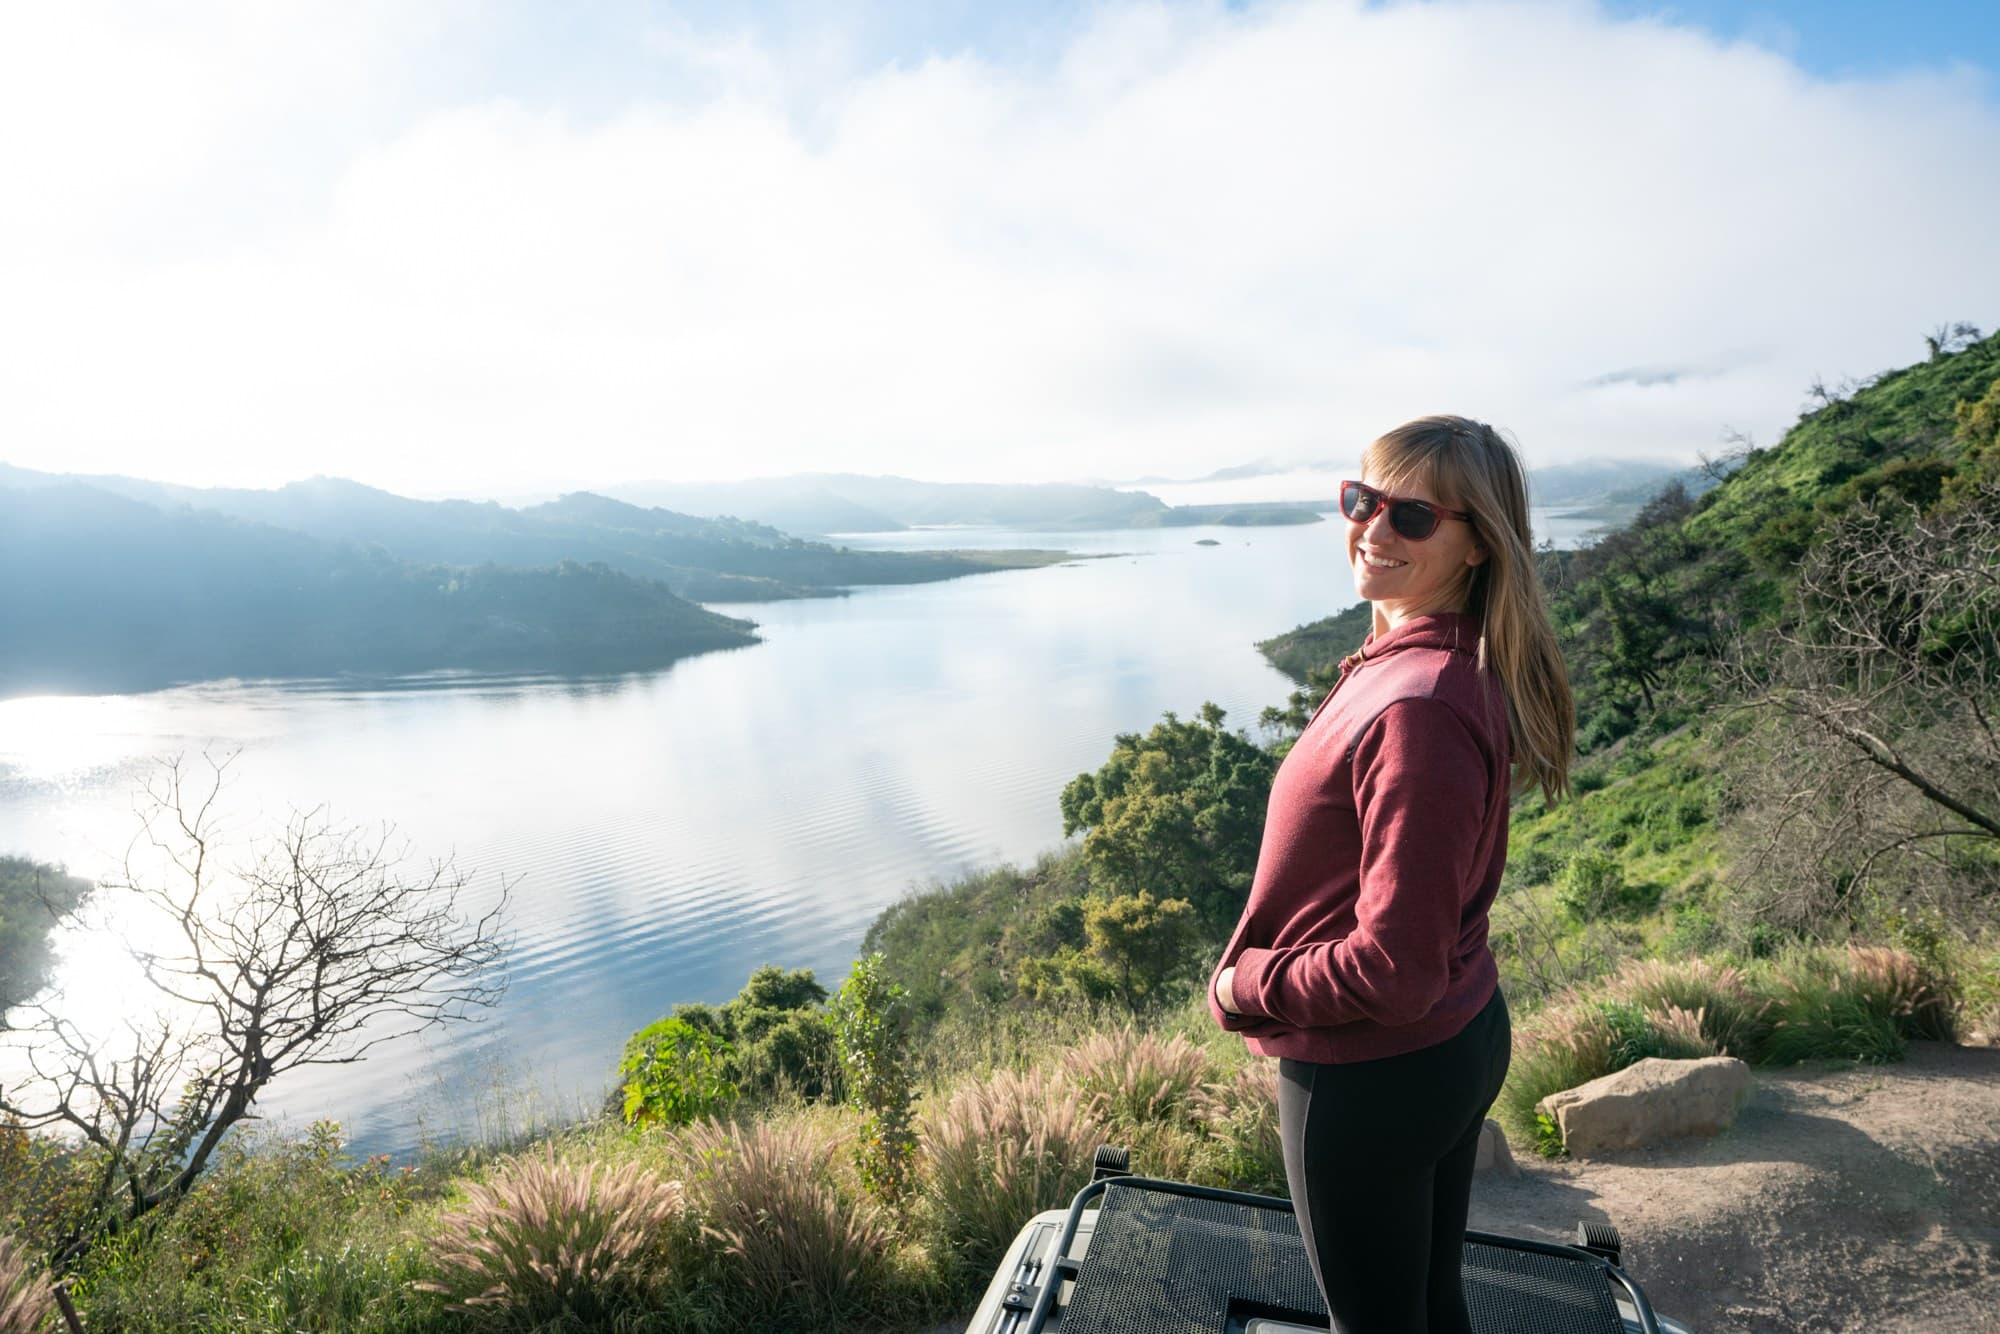 Lake Casitas // A 6 day california coast road trip itinerary that combines outdoor adventure travel and local California beach town culture.